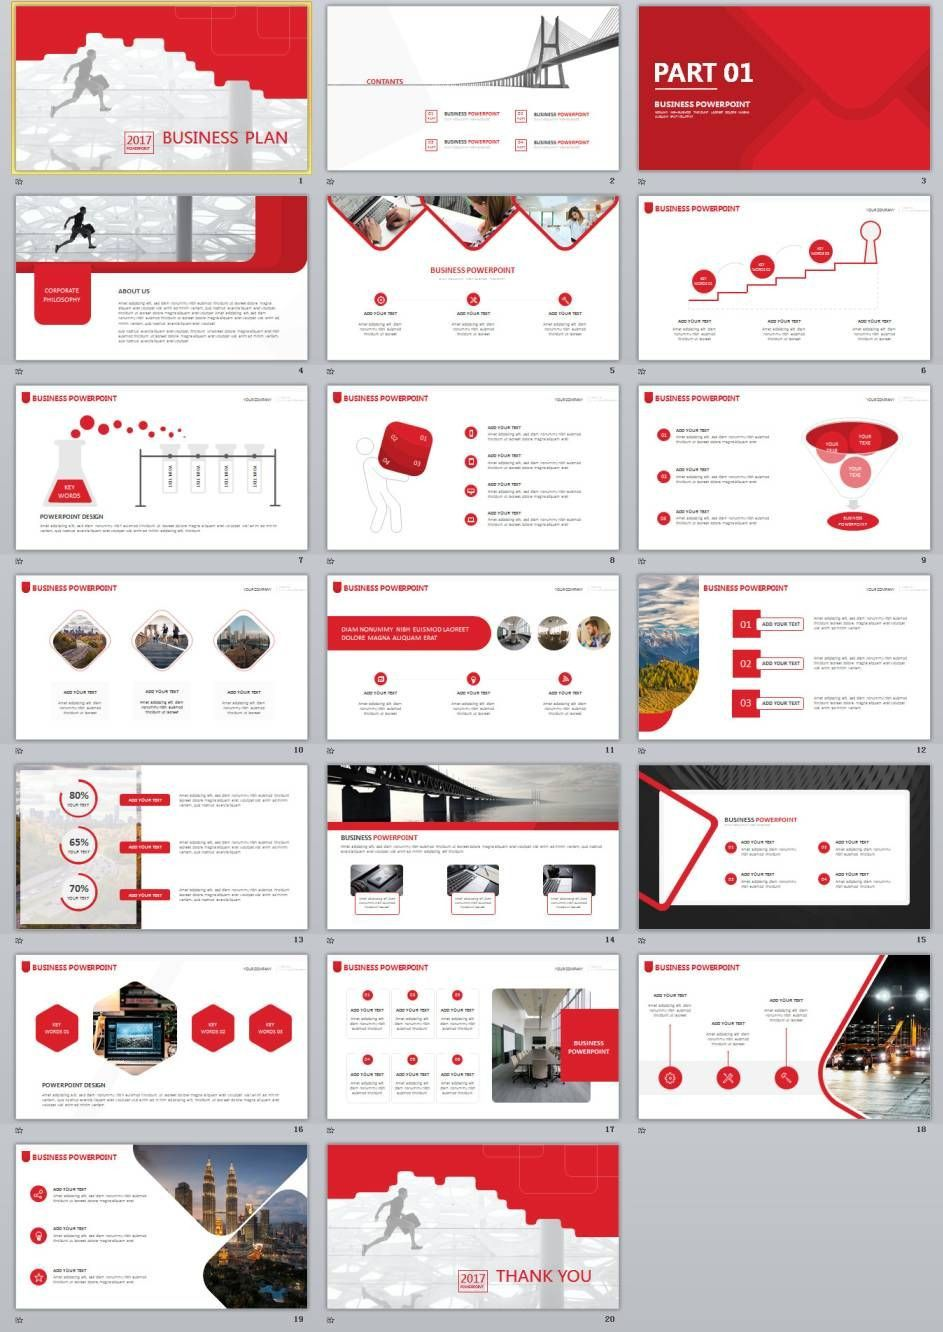 Free Case Study Powerpoint Template Best Of 2017 Business Plan Powerpoint Template Business Plan Presentation Powerpoint Template Free Powerpoint Free